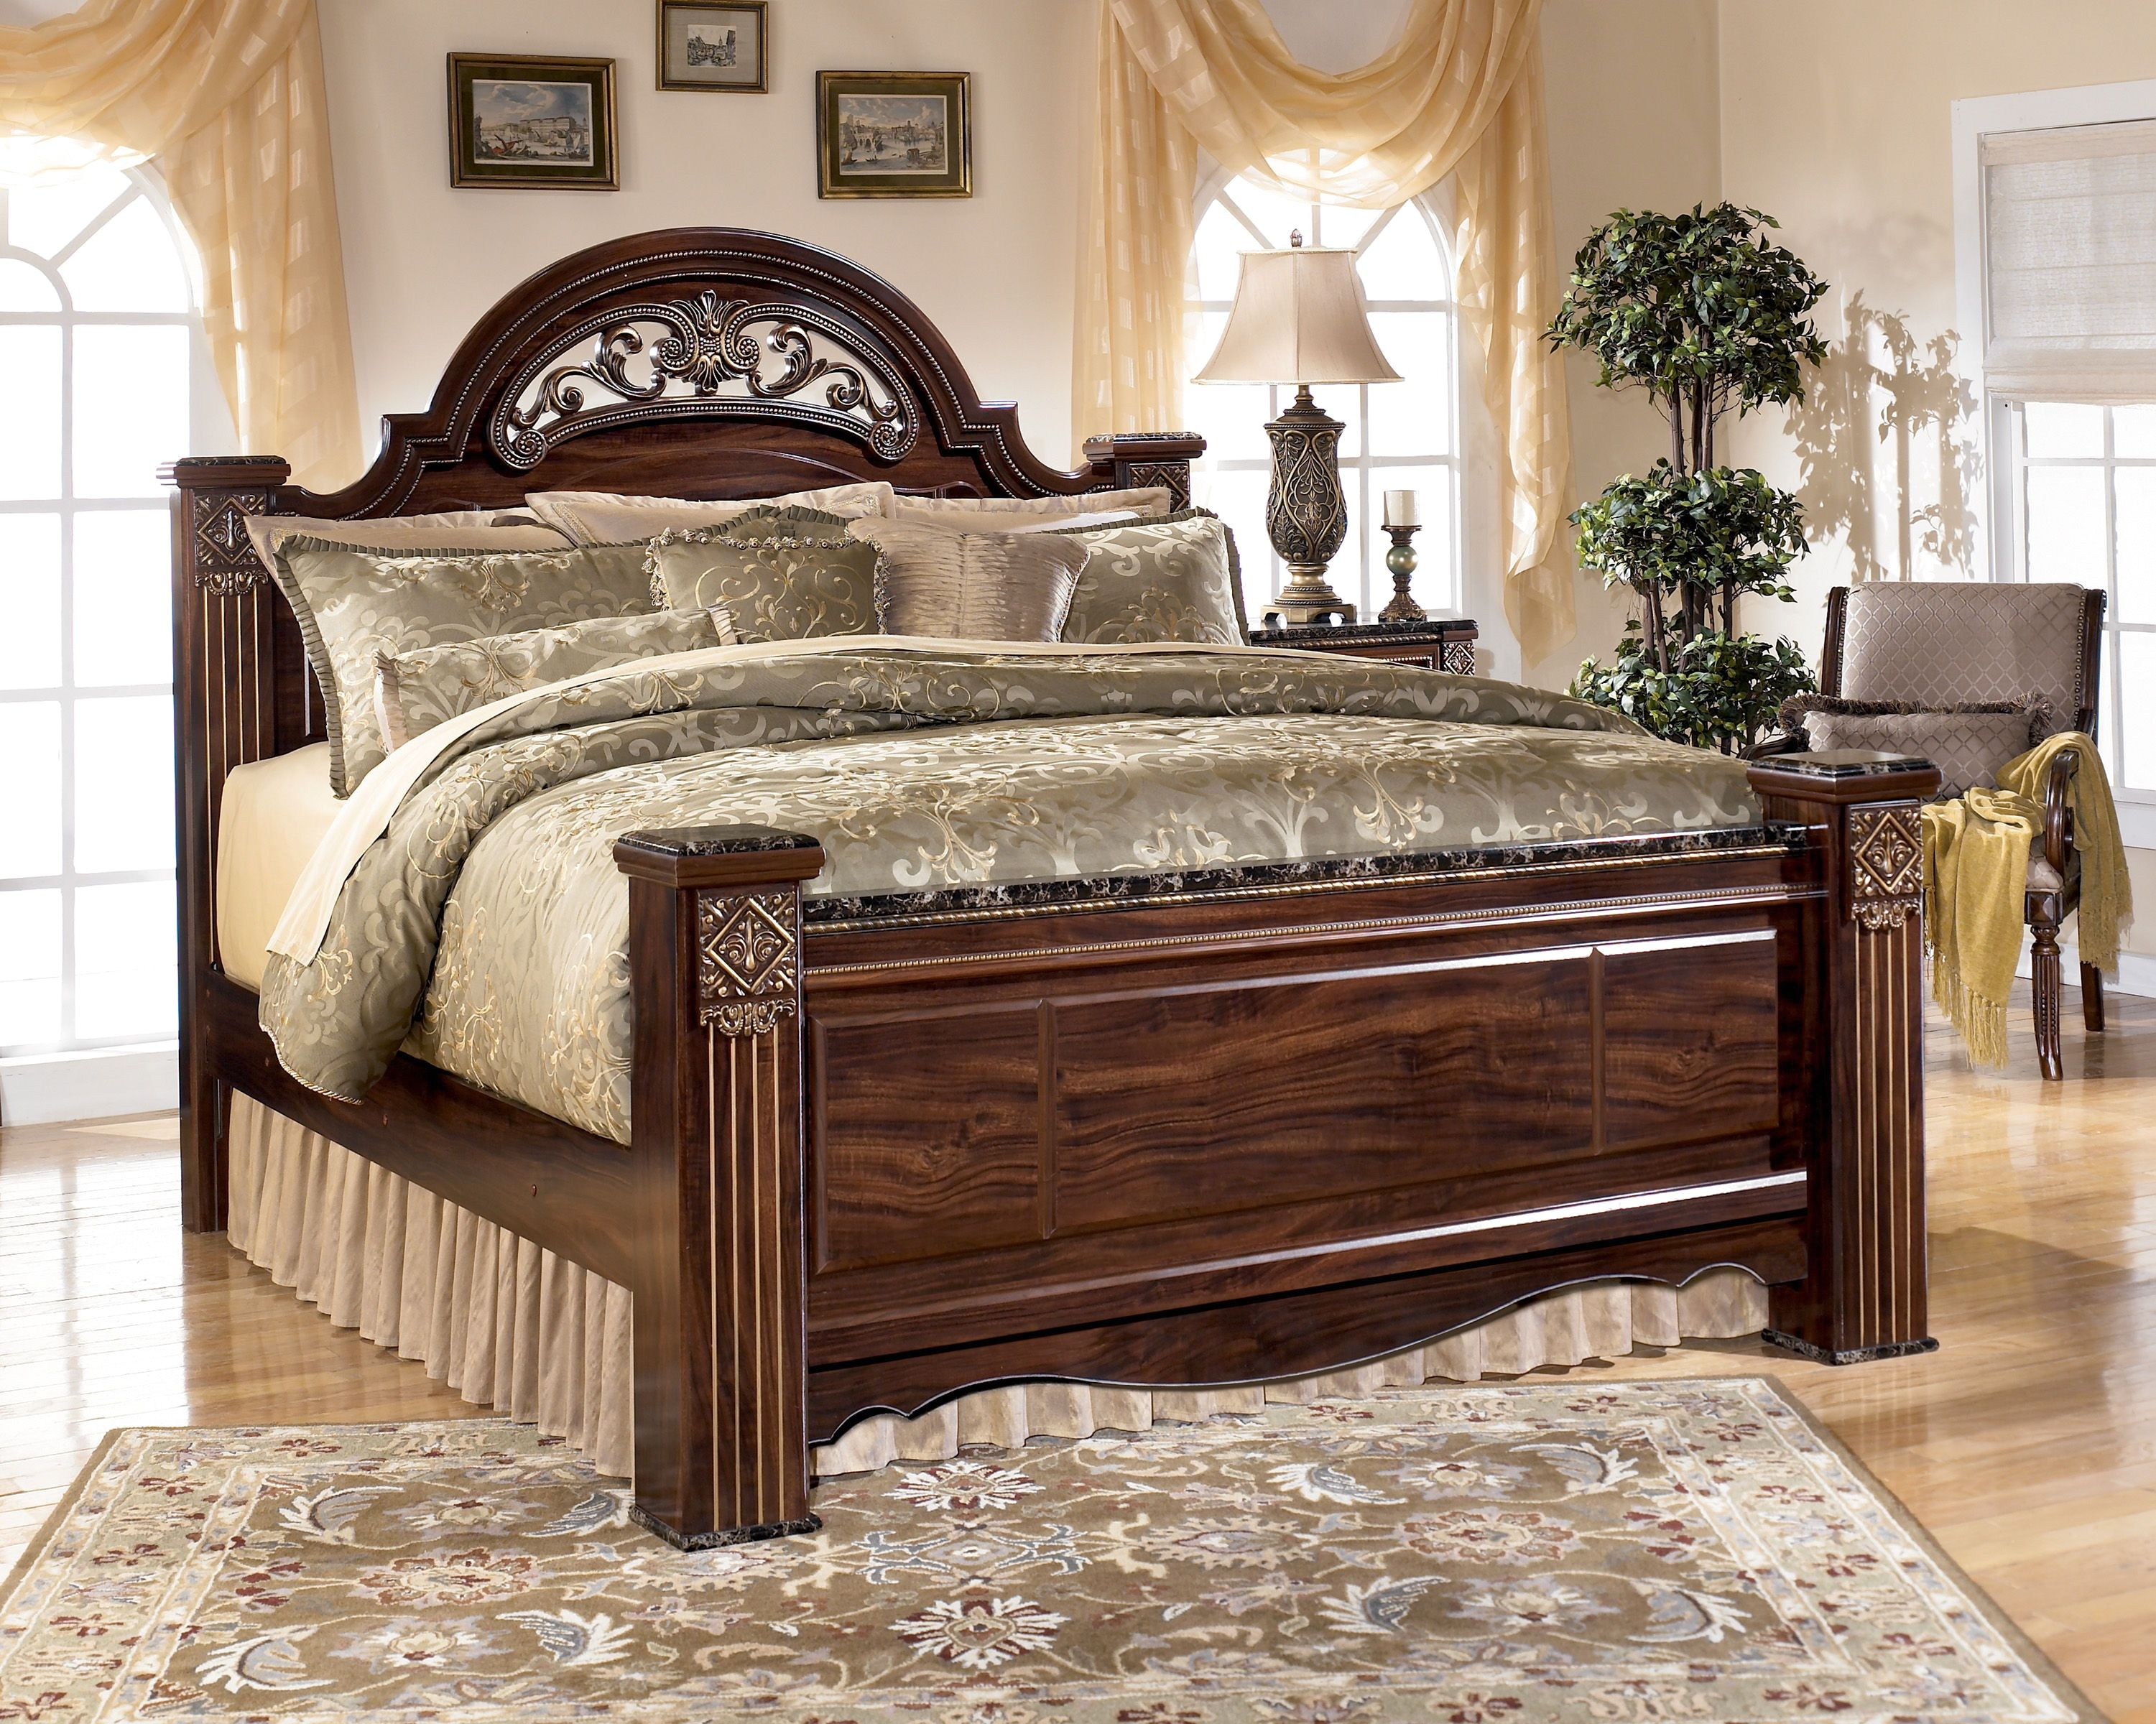 Craigslist Bedroom Furniture Impressivehotos Concept Used For Sale By Owner Sofas Brooklyn Be Tête De Lit Queen Mobilier De Chambre à Coucher Mobilier De Salon